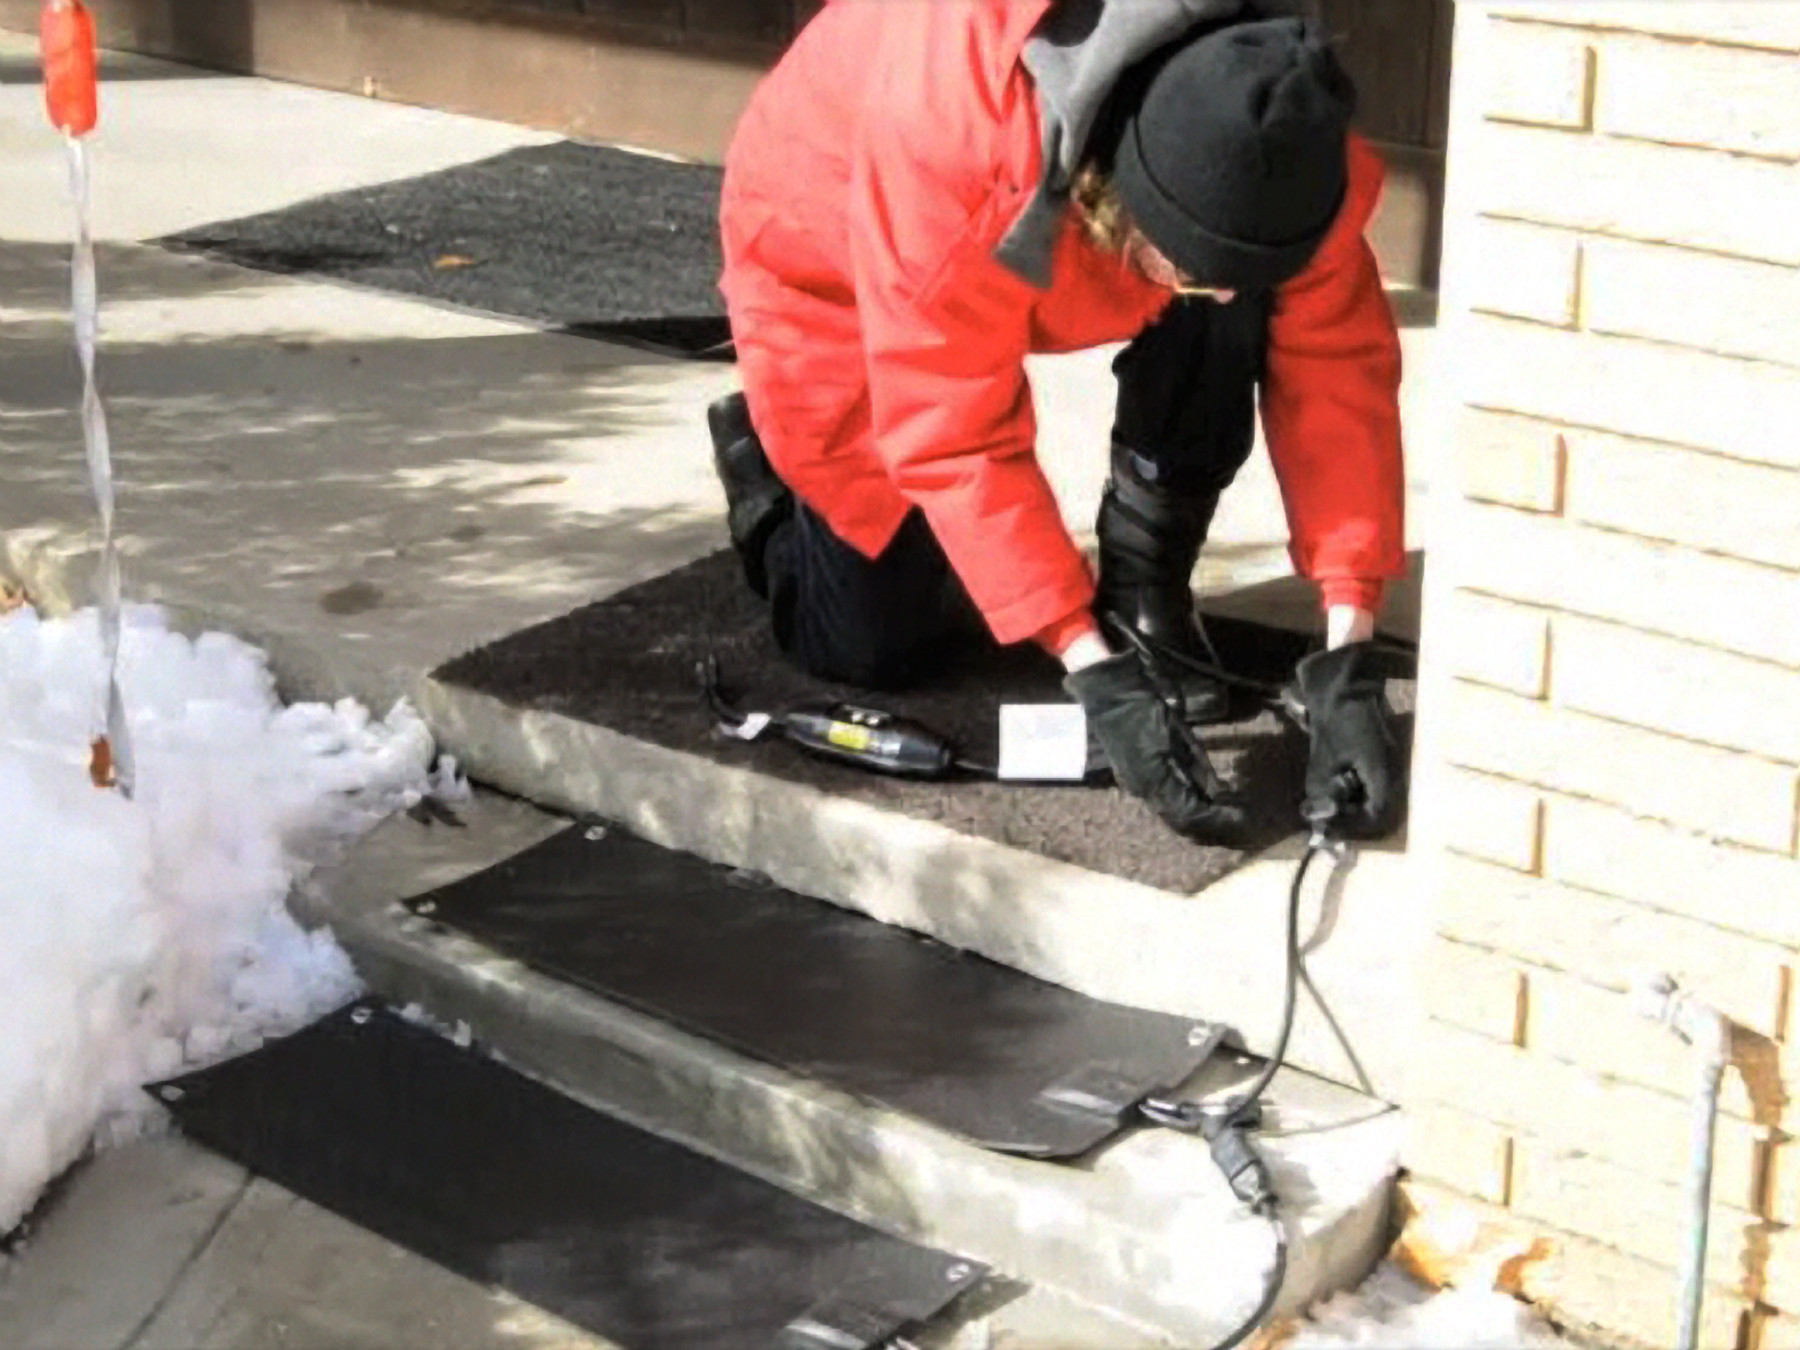 Best ideas about Outdoor Non-Slip Stair Treads For Snow . Save or Pin New Residential Heated Stair Tread Mats Melt Snow and Ice Now.